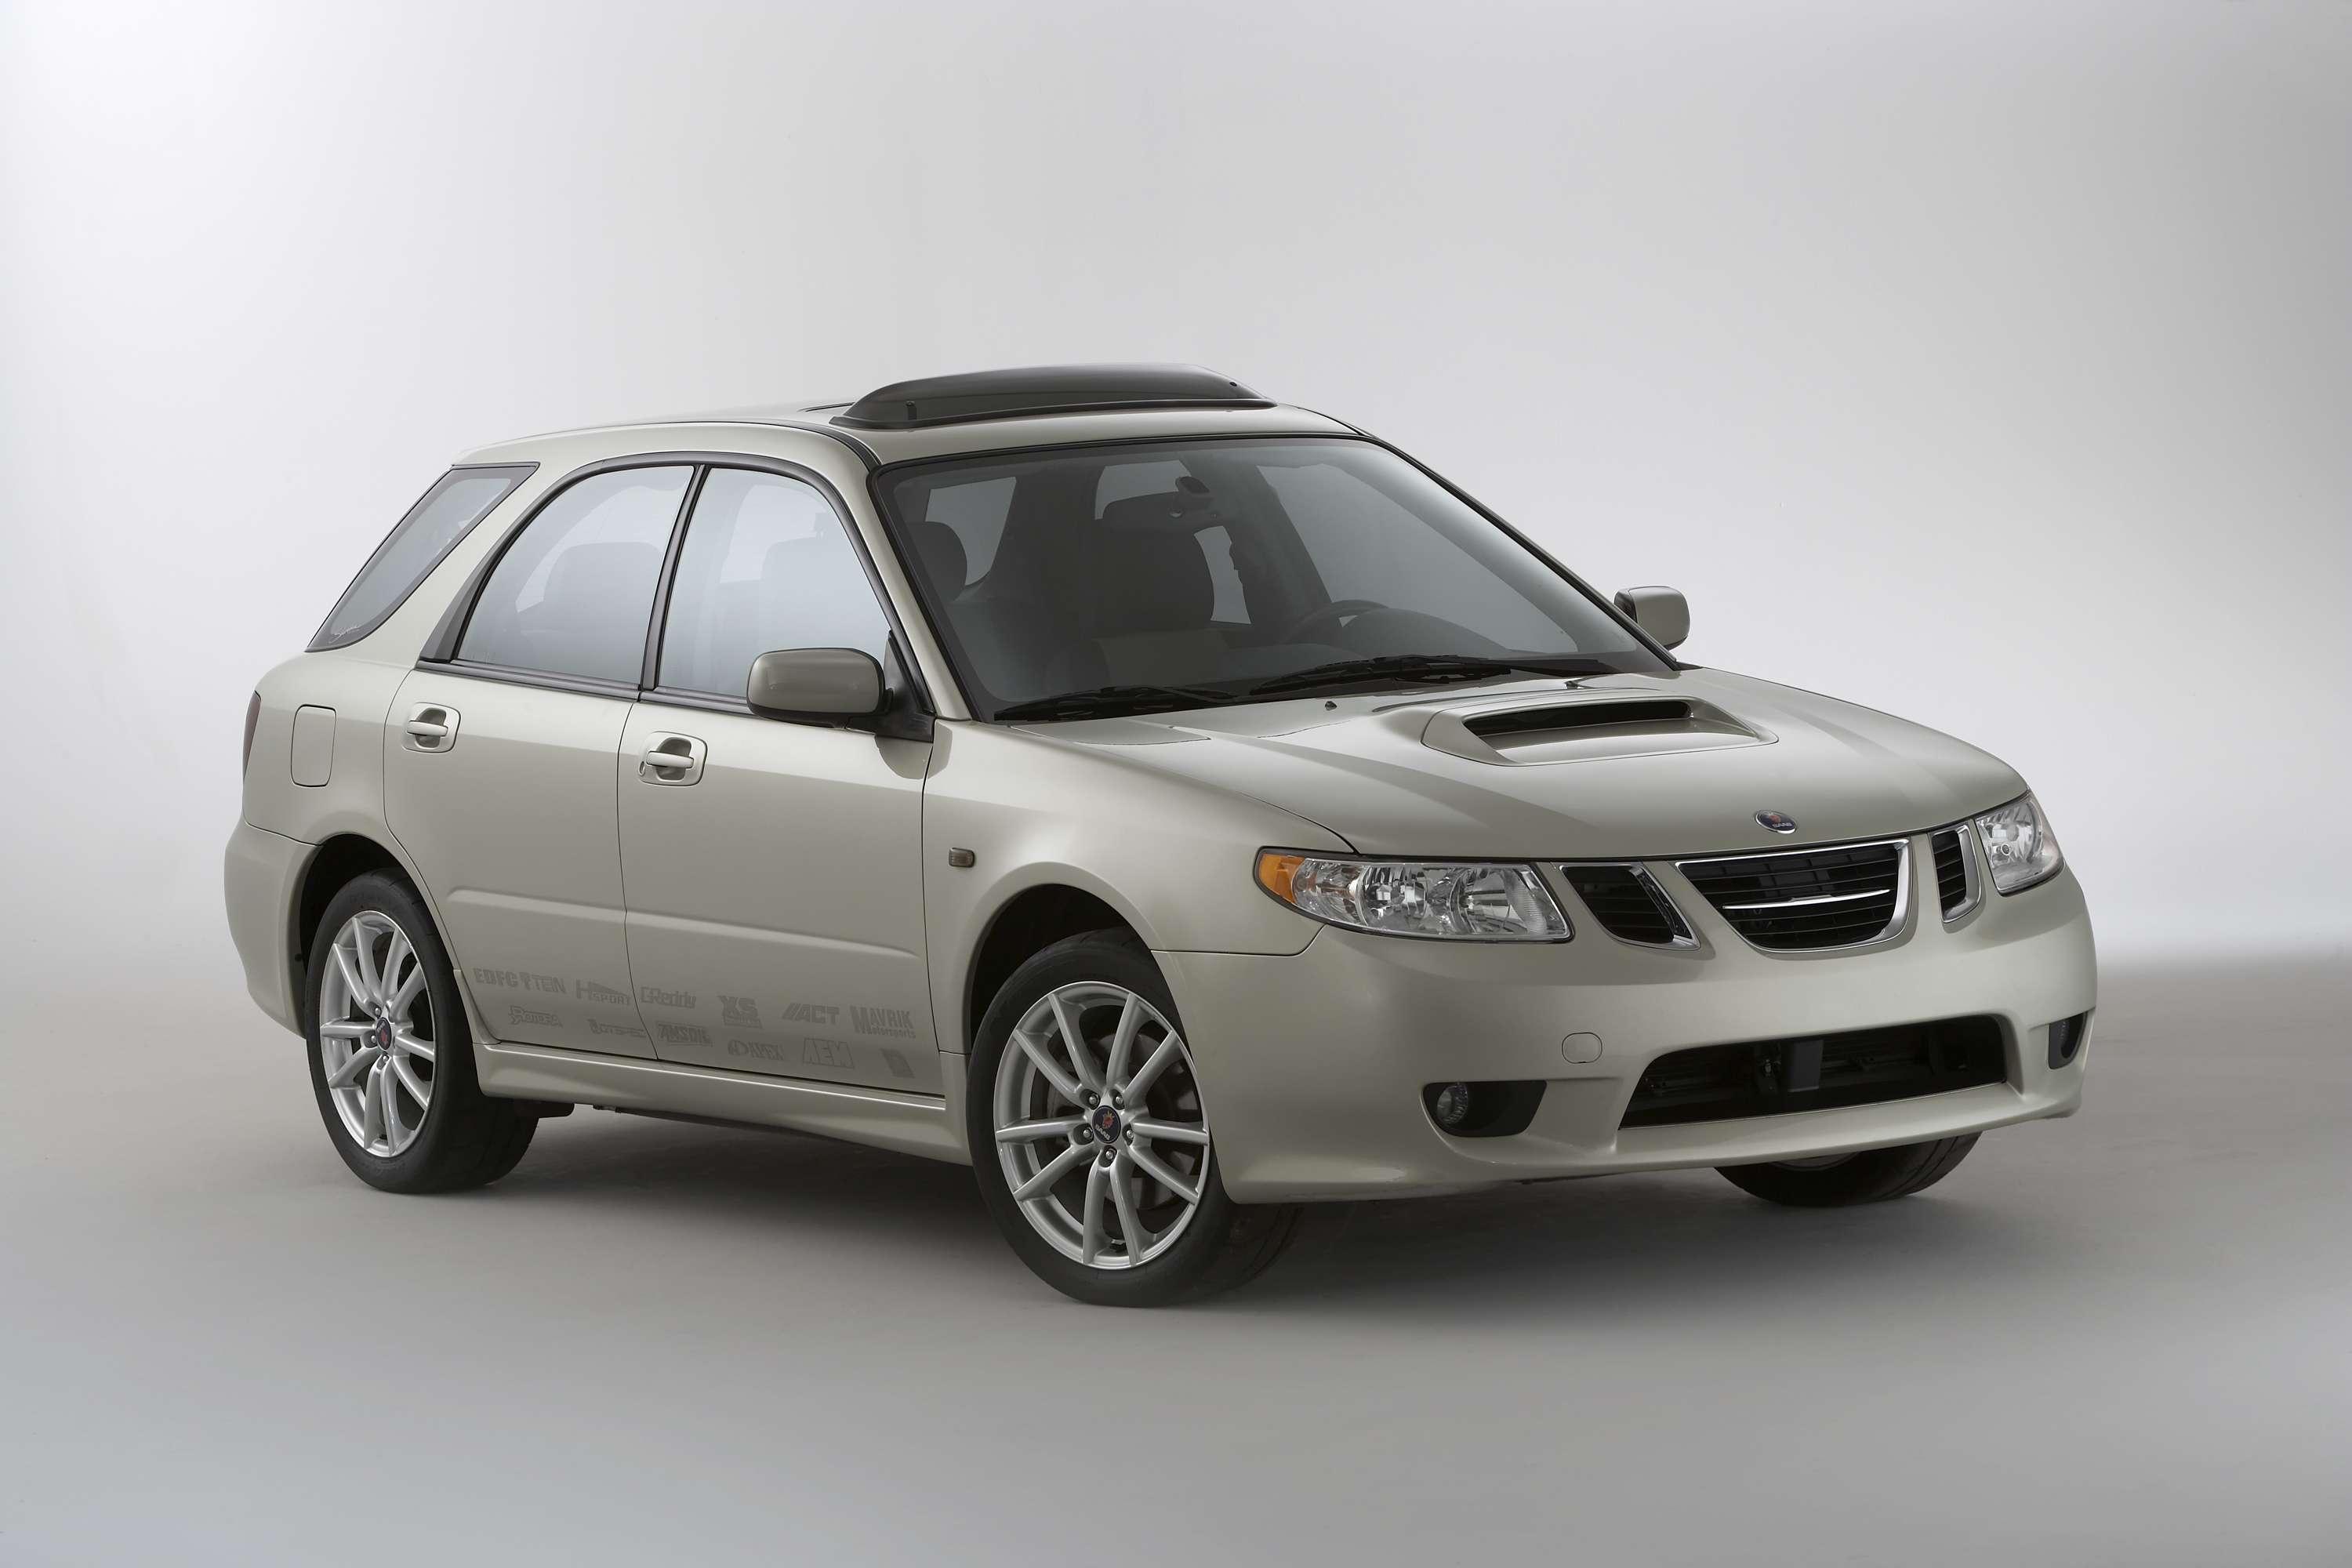 tom donney motors 2005 saab 9 2x aero. Black Bedroom Furniture Sets. Home Design Ideas